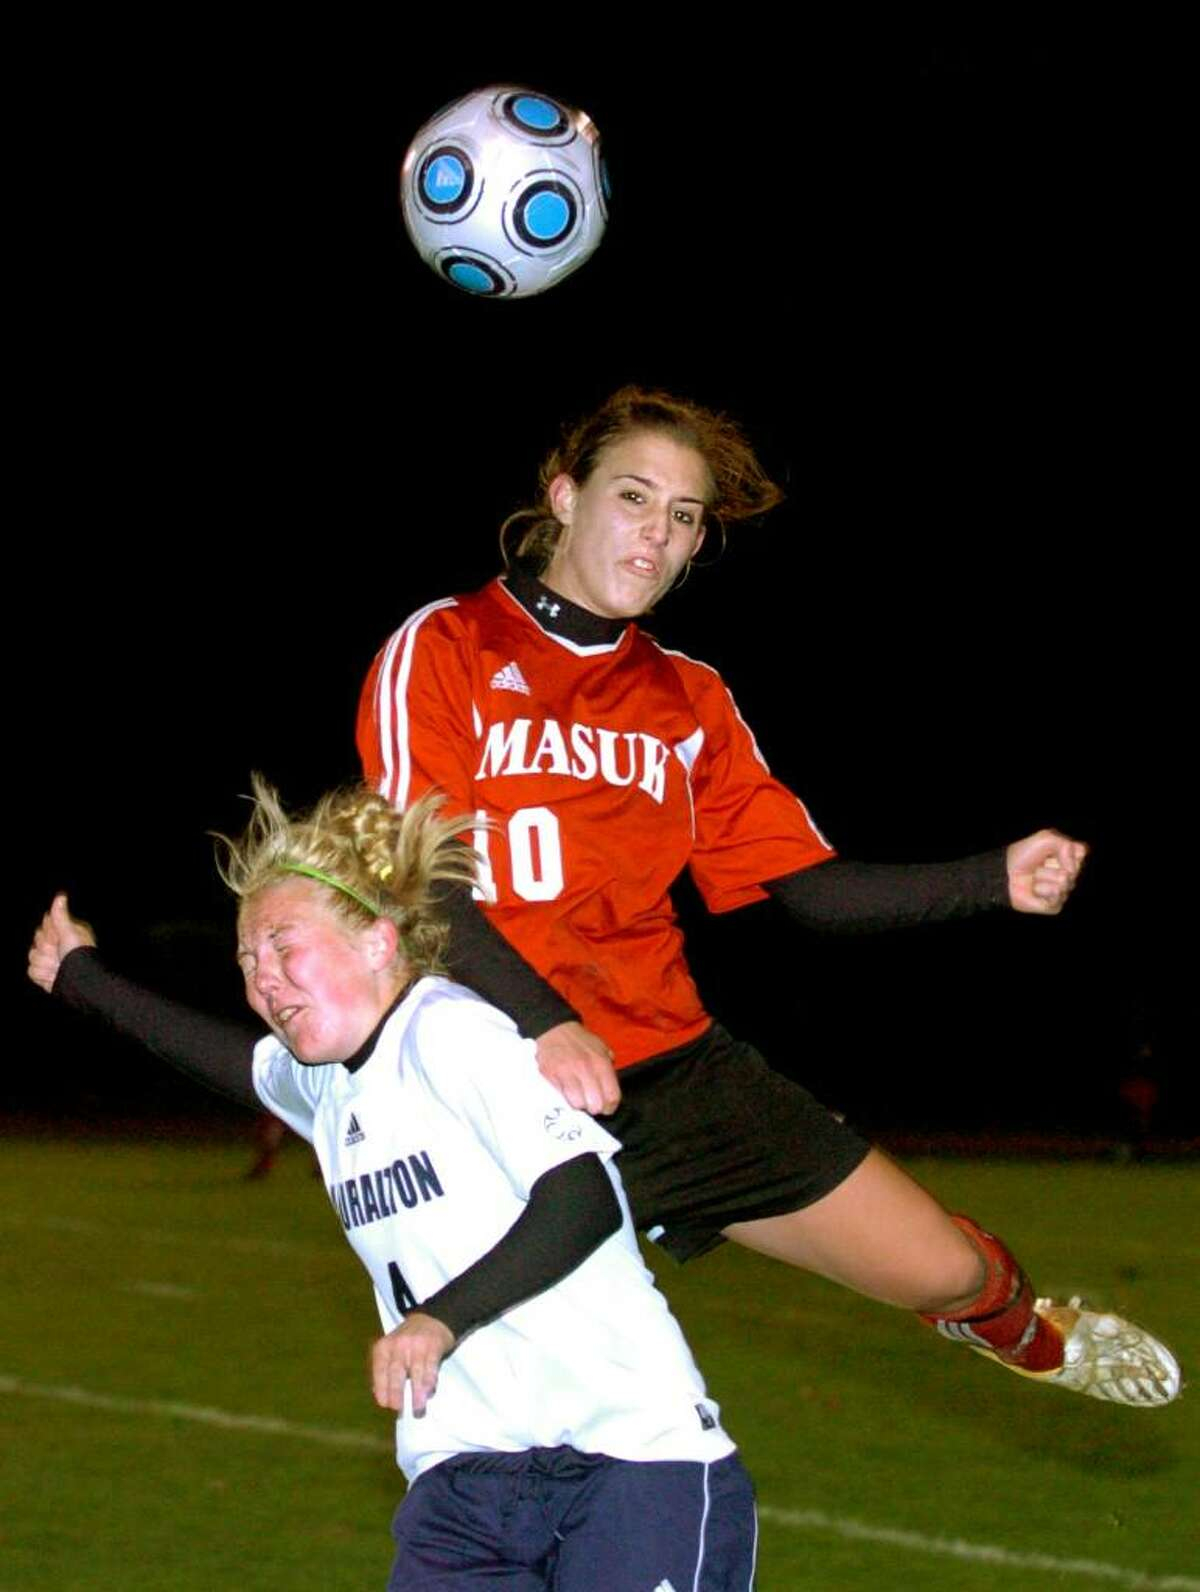 Masuk's Marissa Maiolo knocks into Lauralton Hall's Allison Miles as she heads the ball in the second half of Thursday night's South West Conference Girls Soccer Championship at Joel Barlow High School.